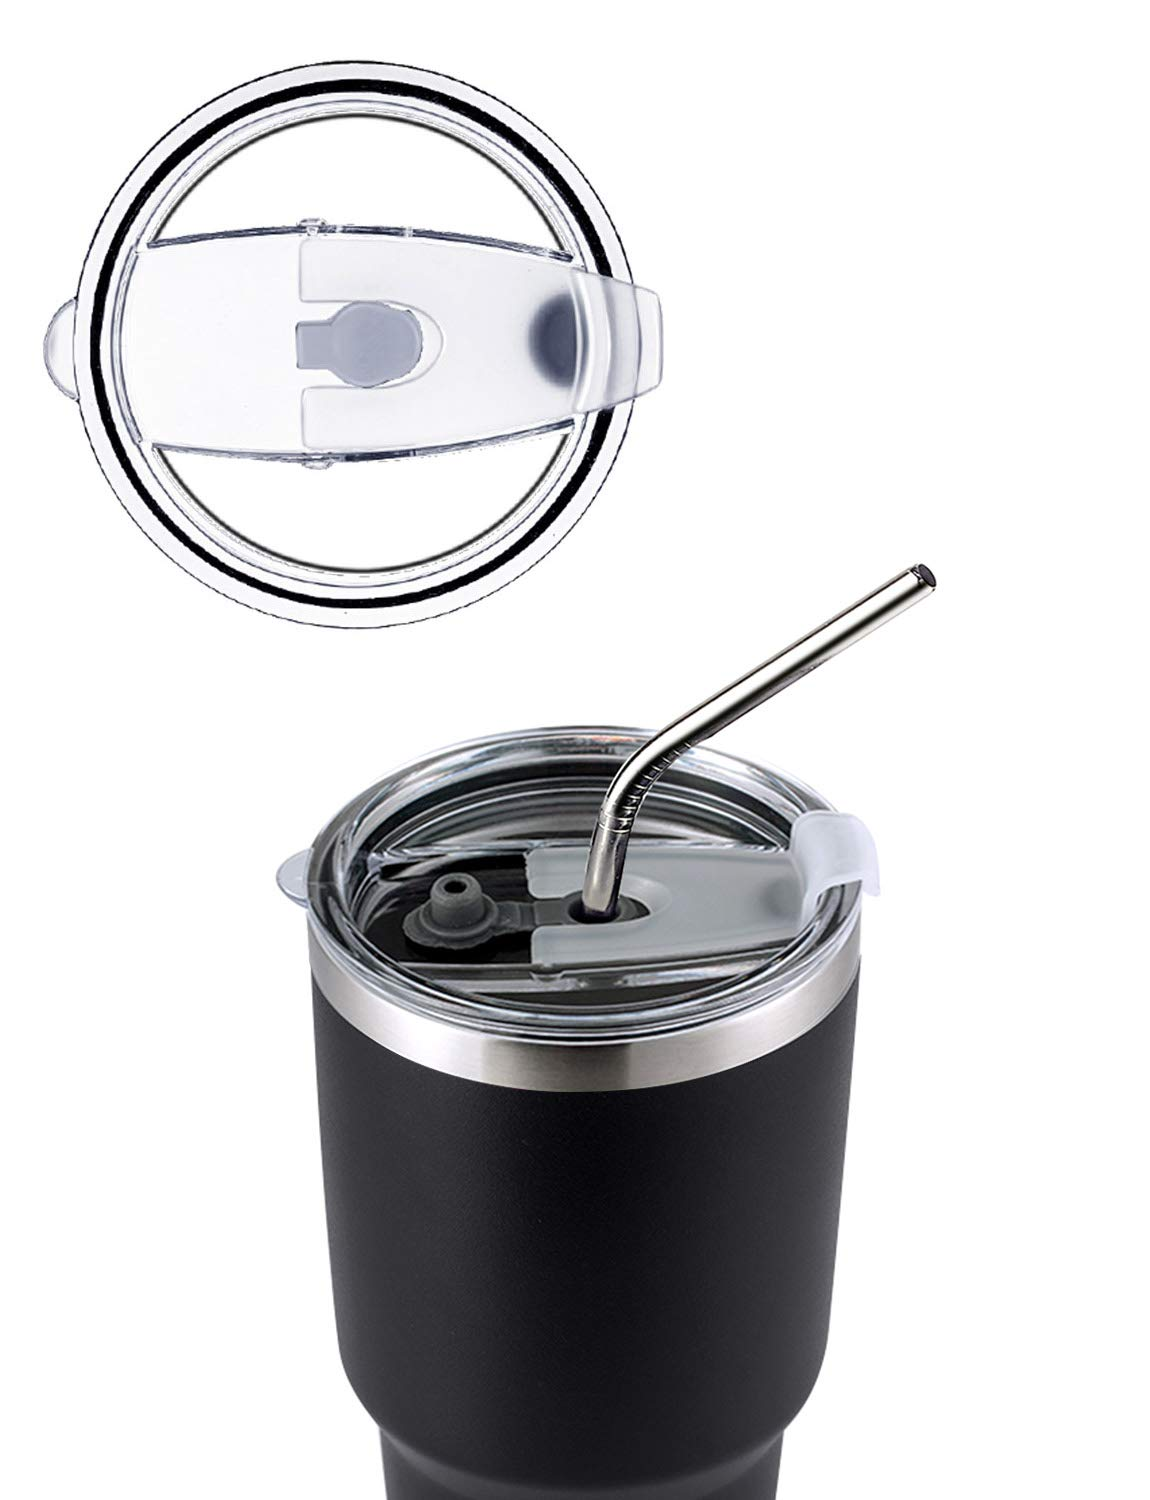 DYNAMIC-SE-30oz-Tumbler-Double-Wall-Stainless-Steel-Vacuum-Insulated-Travel-Mug-with-Splash-Proof-Lid-Metal-Straw-and-Brush